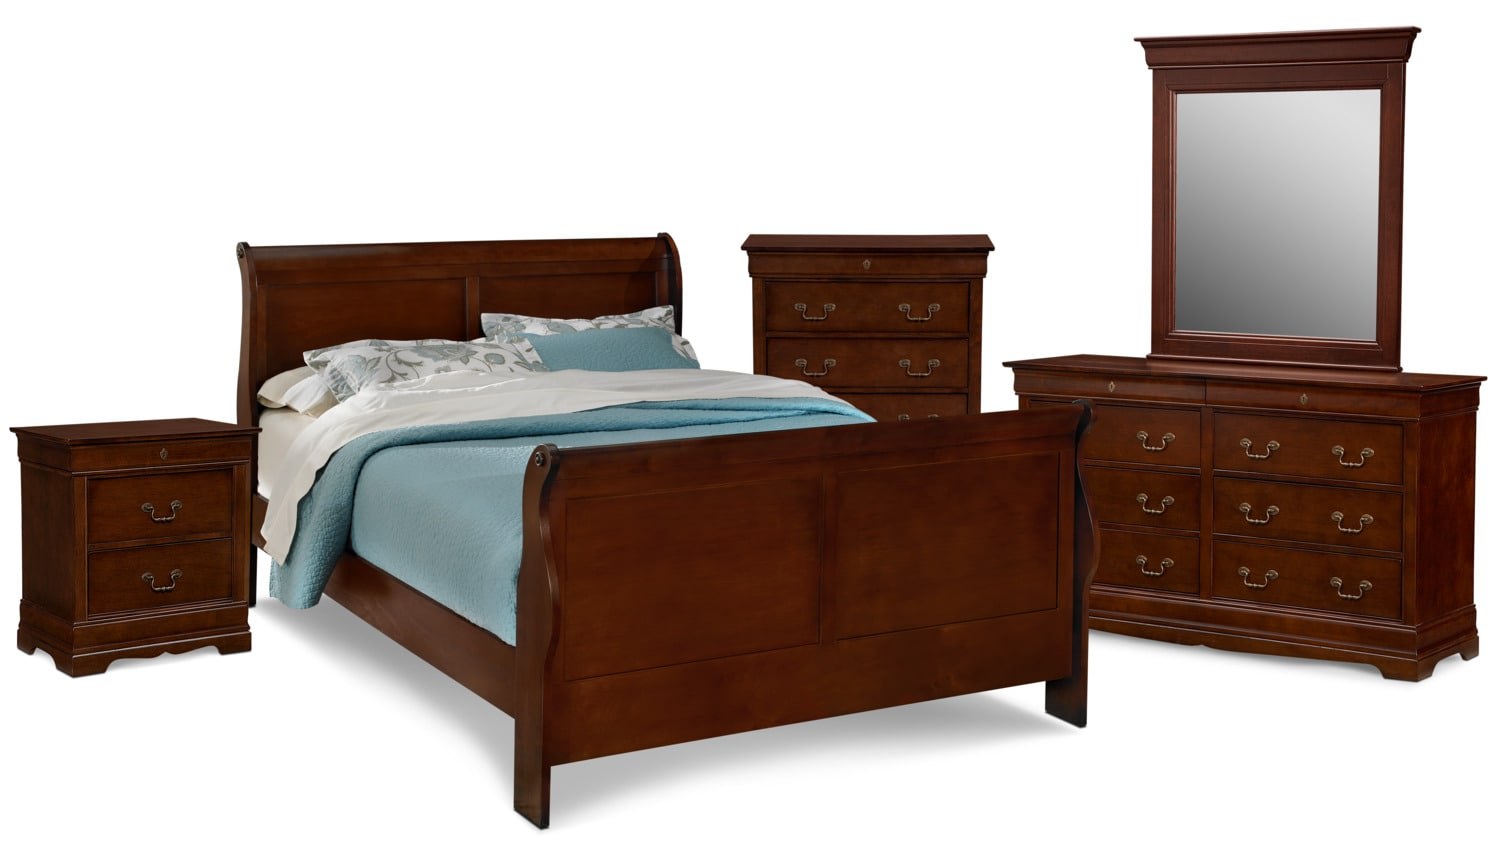 Neo Classic 7-Piece Queen Bedroom Set - Cherry | Value City ...